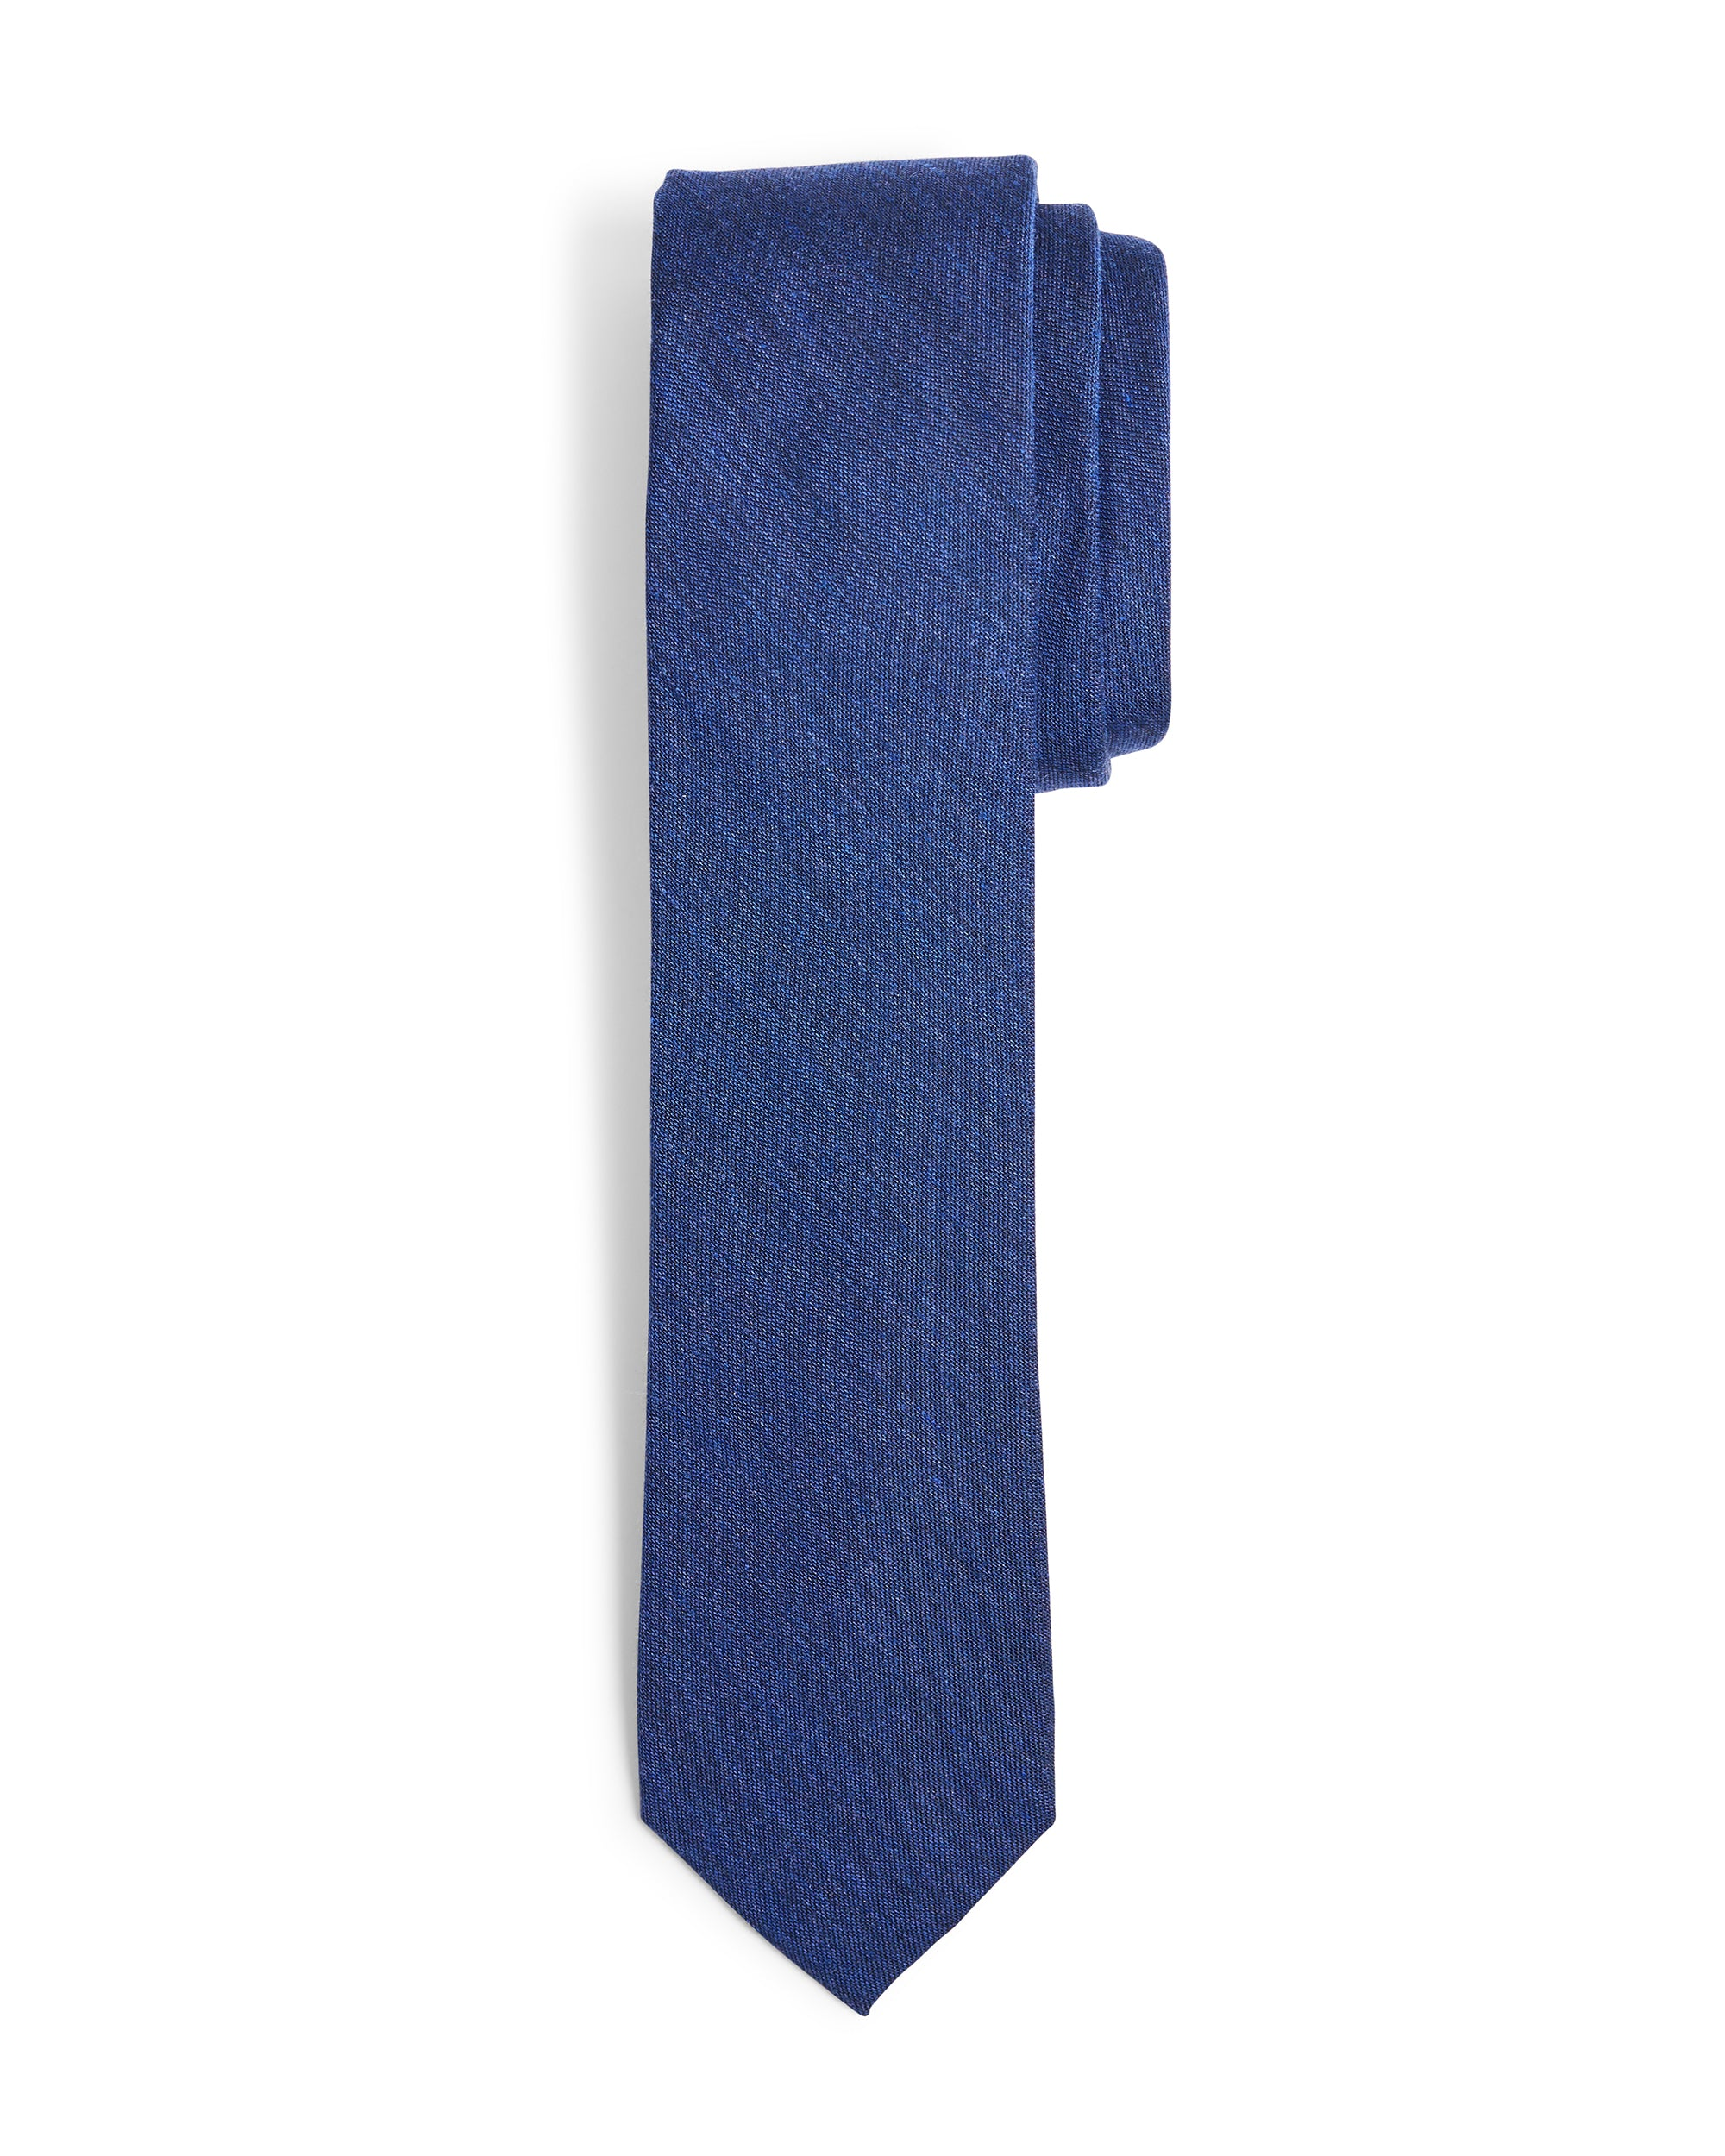 Lynwood Solid Slim Tie - Navy